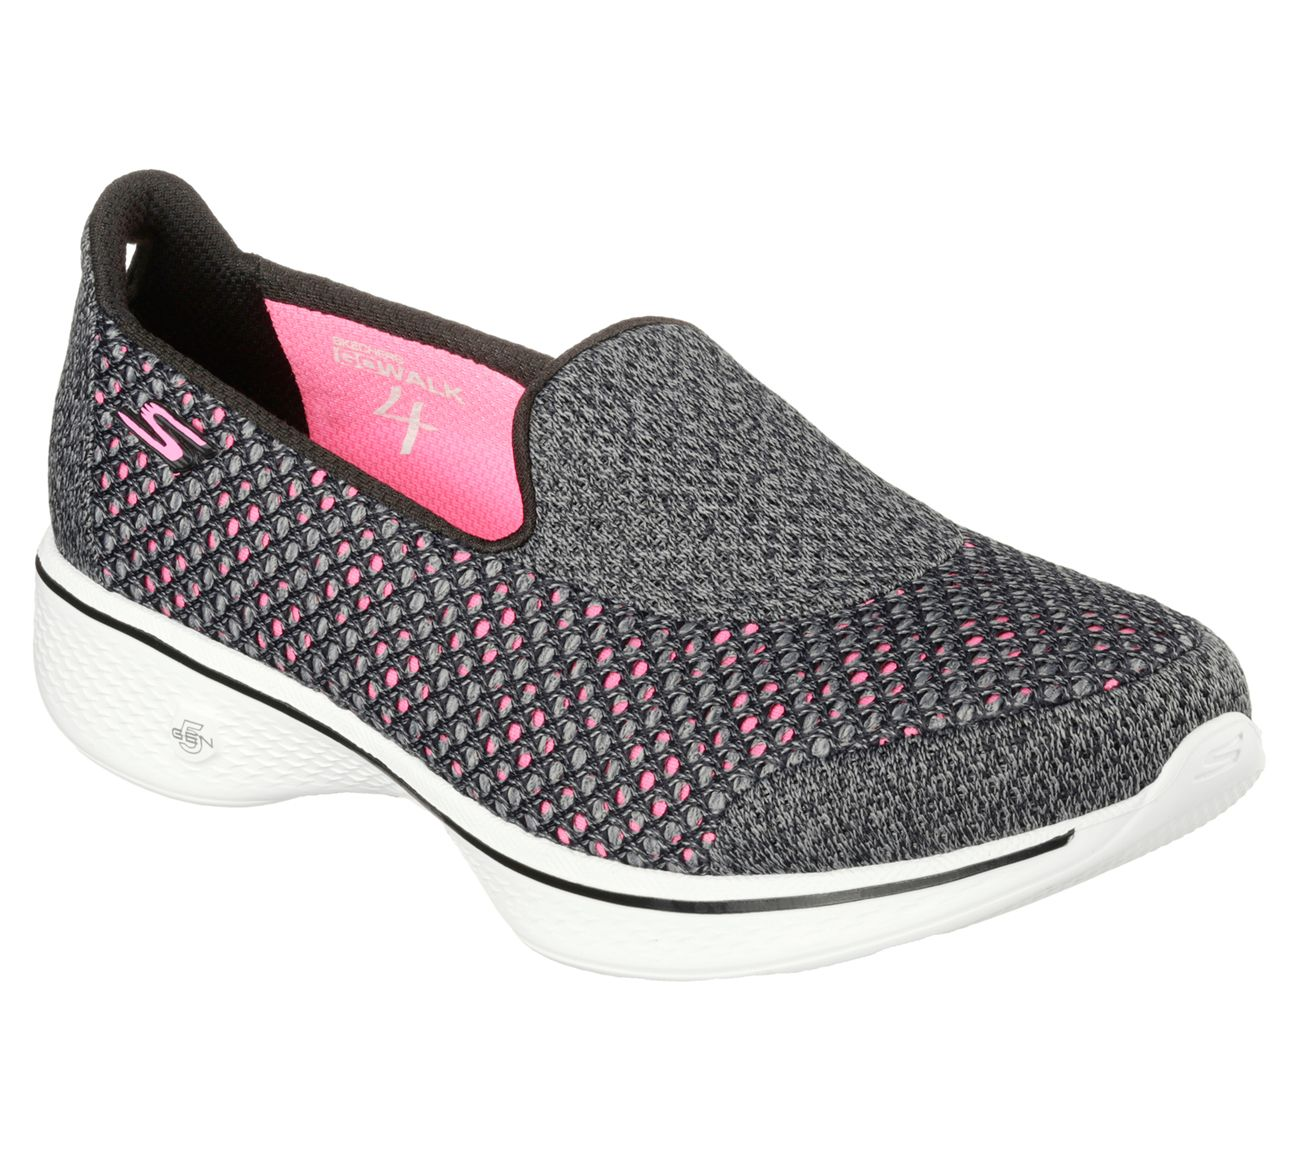 Choose greatness with the Skechers GOwalk 4 - Kindle™